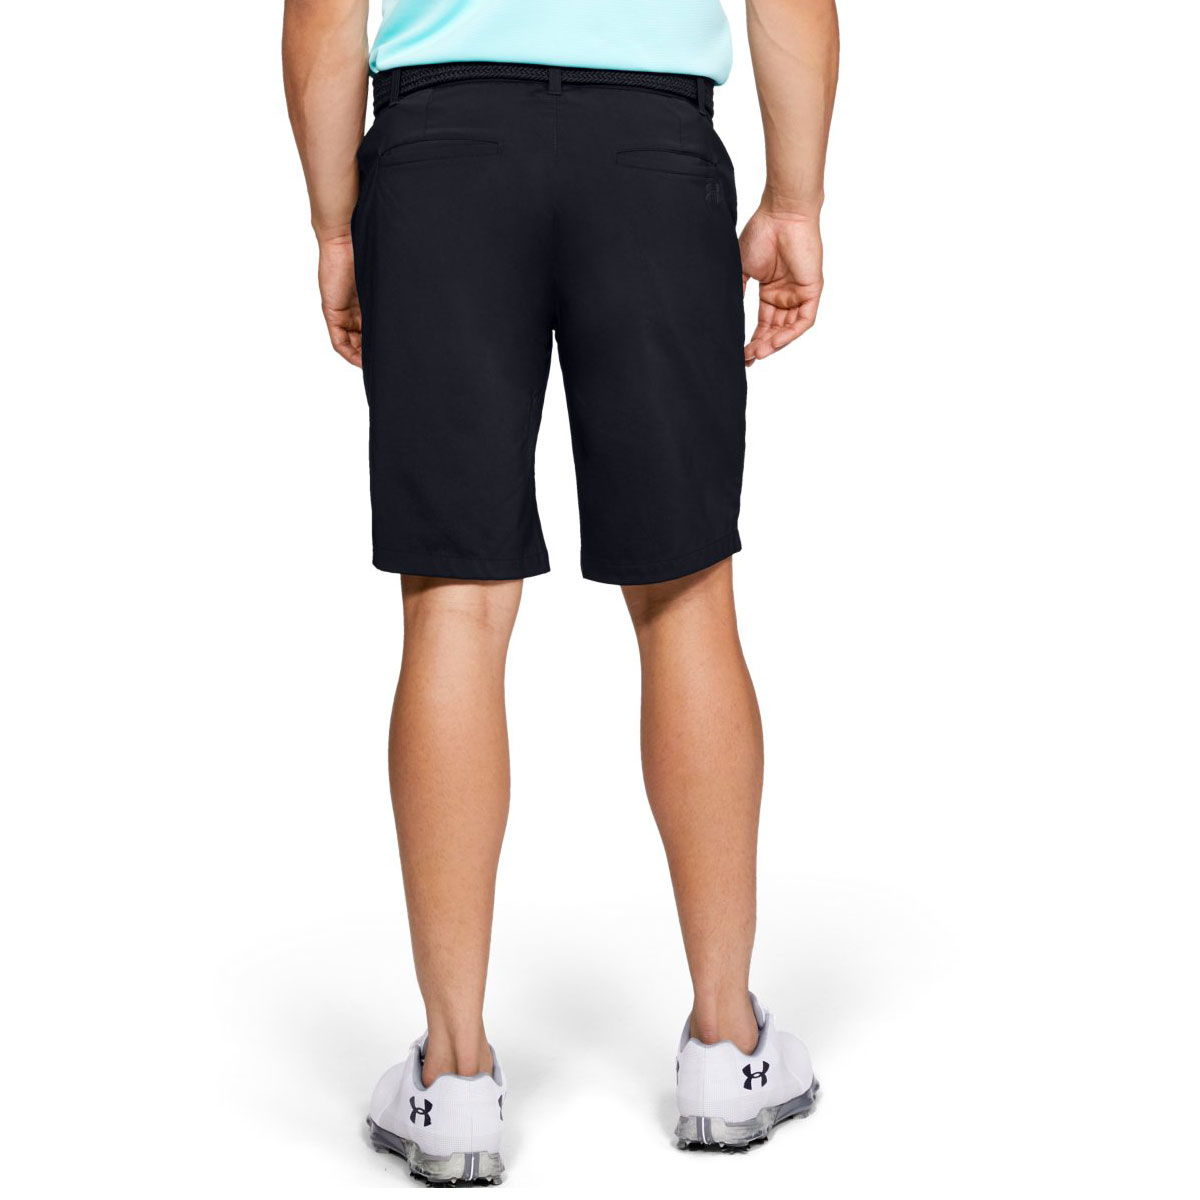 Under-Armour-Mens-2019-EU-Tech-Stretch-Soft-Tapered-Fitted-Golf-Shorts Indexbild 3